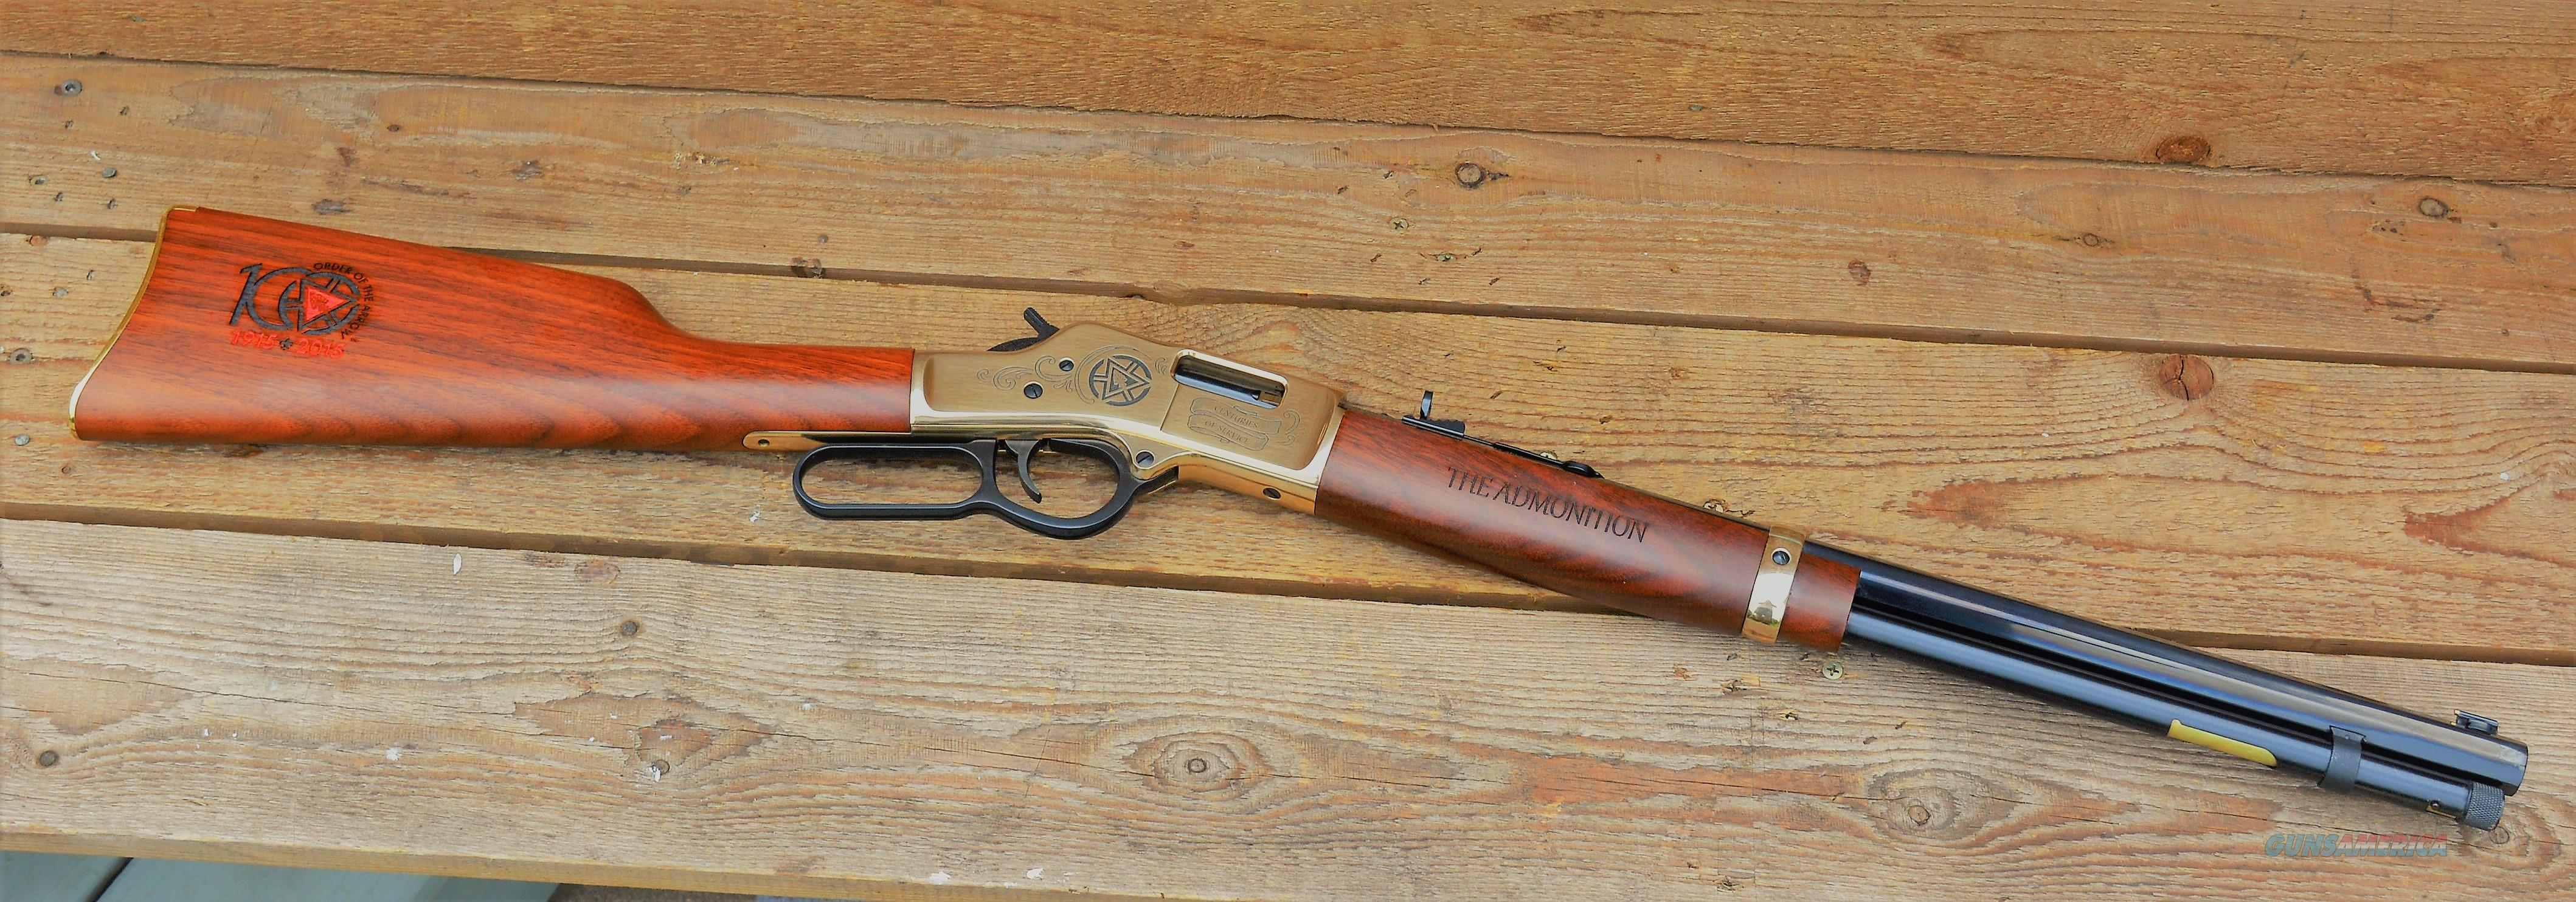 (Easy PAY Sale )   2nd Amendment used in thought in the year 1789 versus Martial law used in the war of 1812 Henry .44  magnum accepts .44 Special  Use  ammo for revolver pistol and carbine Rd brass receiver engraved & Walnut Wood  H006OA  Guns > Rifles > Henry Rifles - Replica